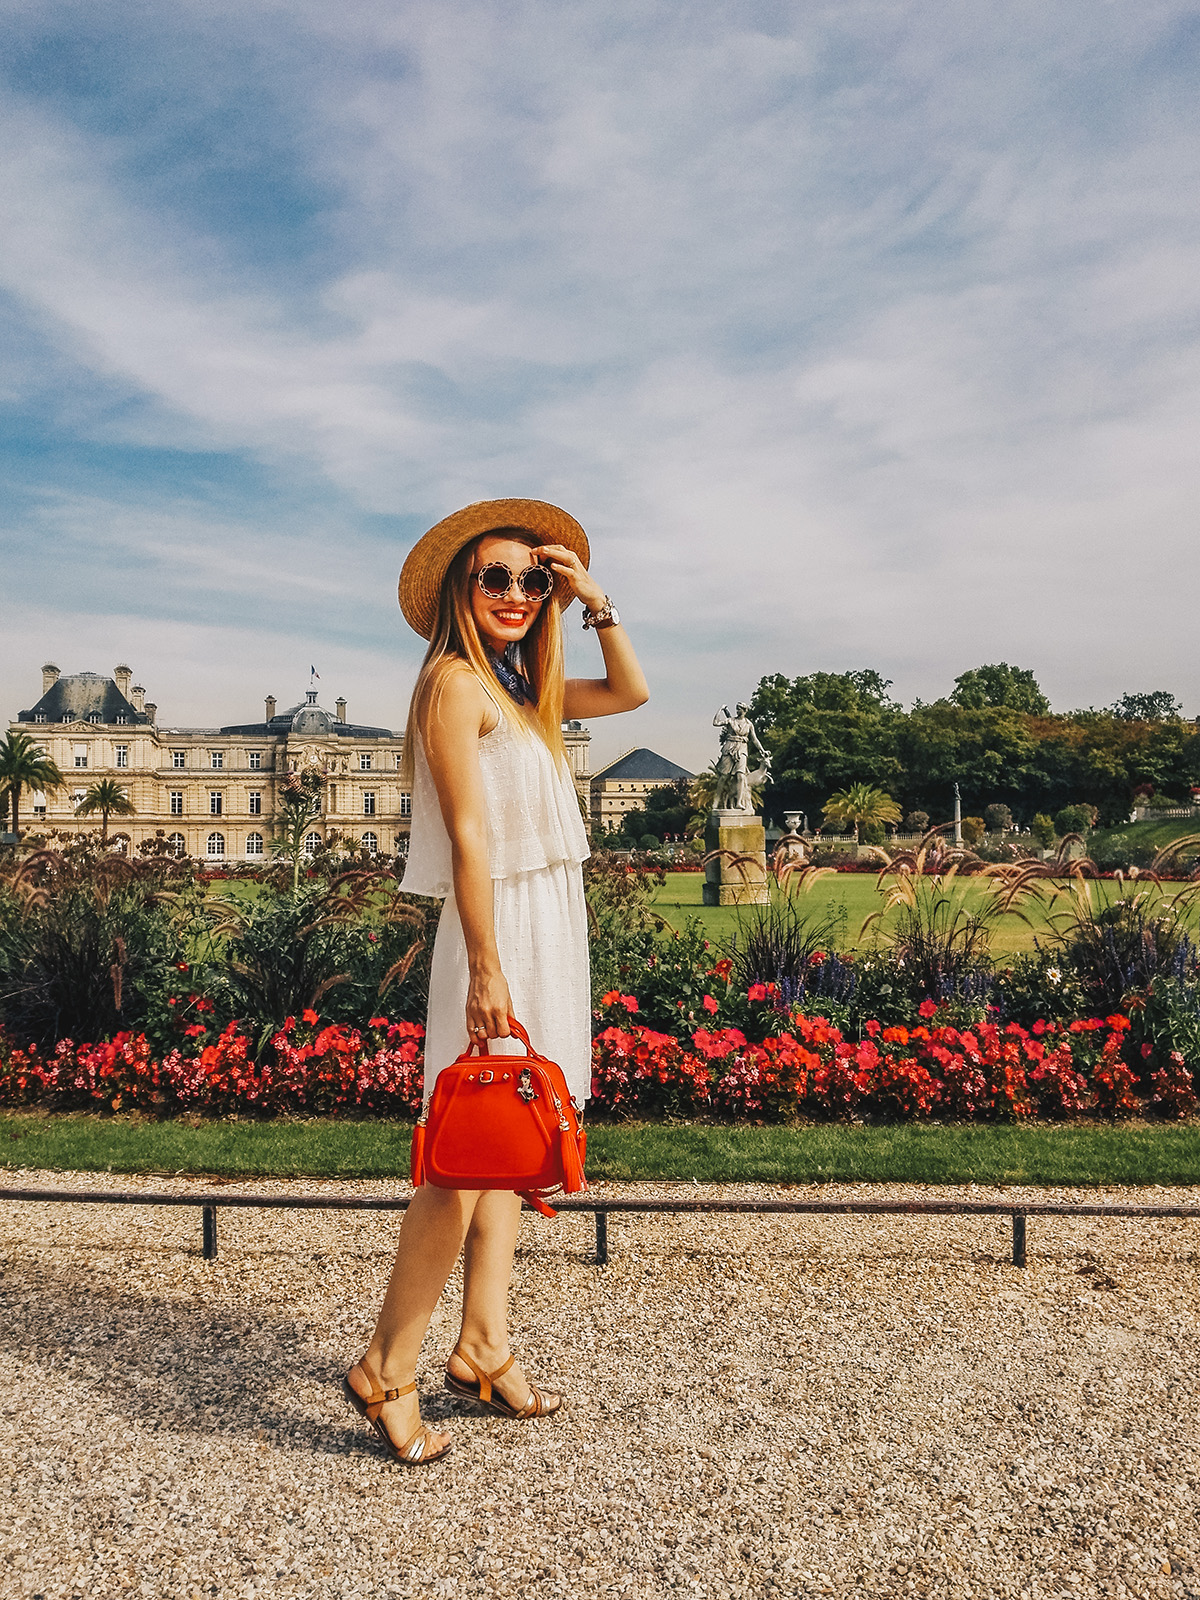 paris-jardin-luxembourg-pink-wish-french-outfit-8